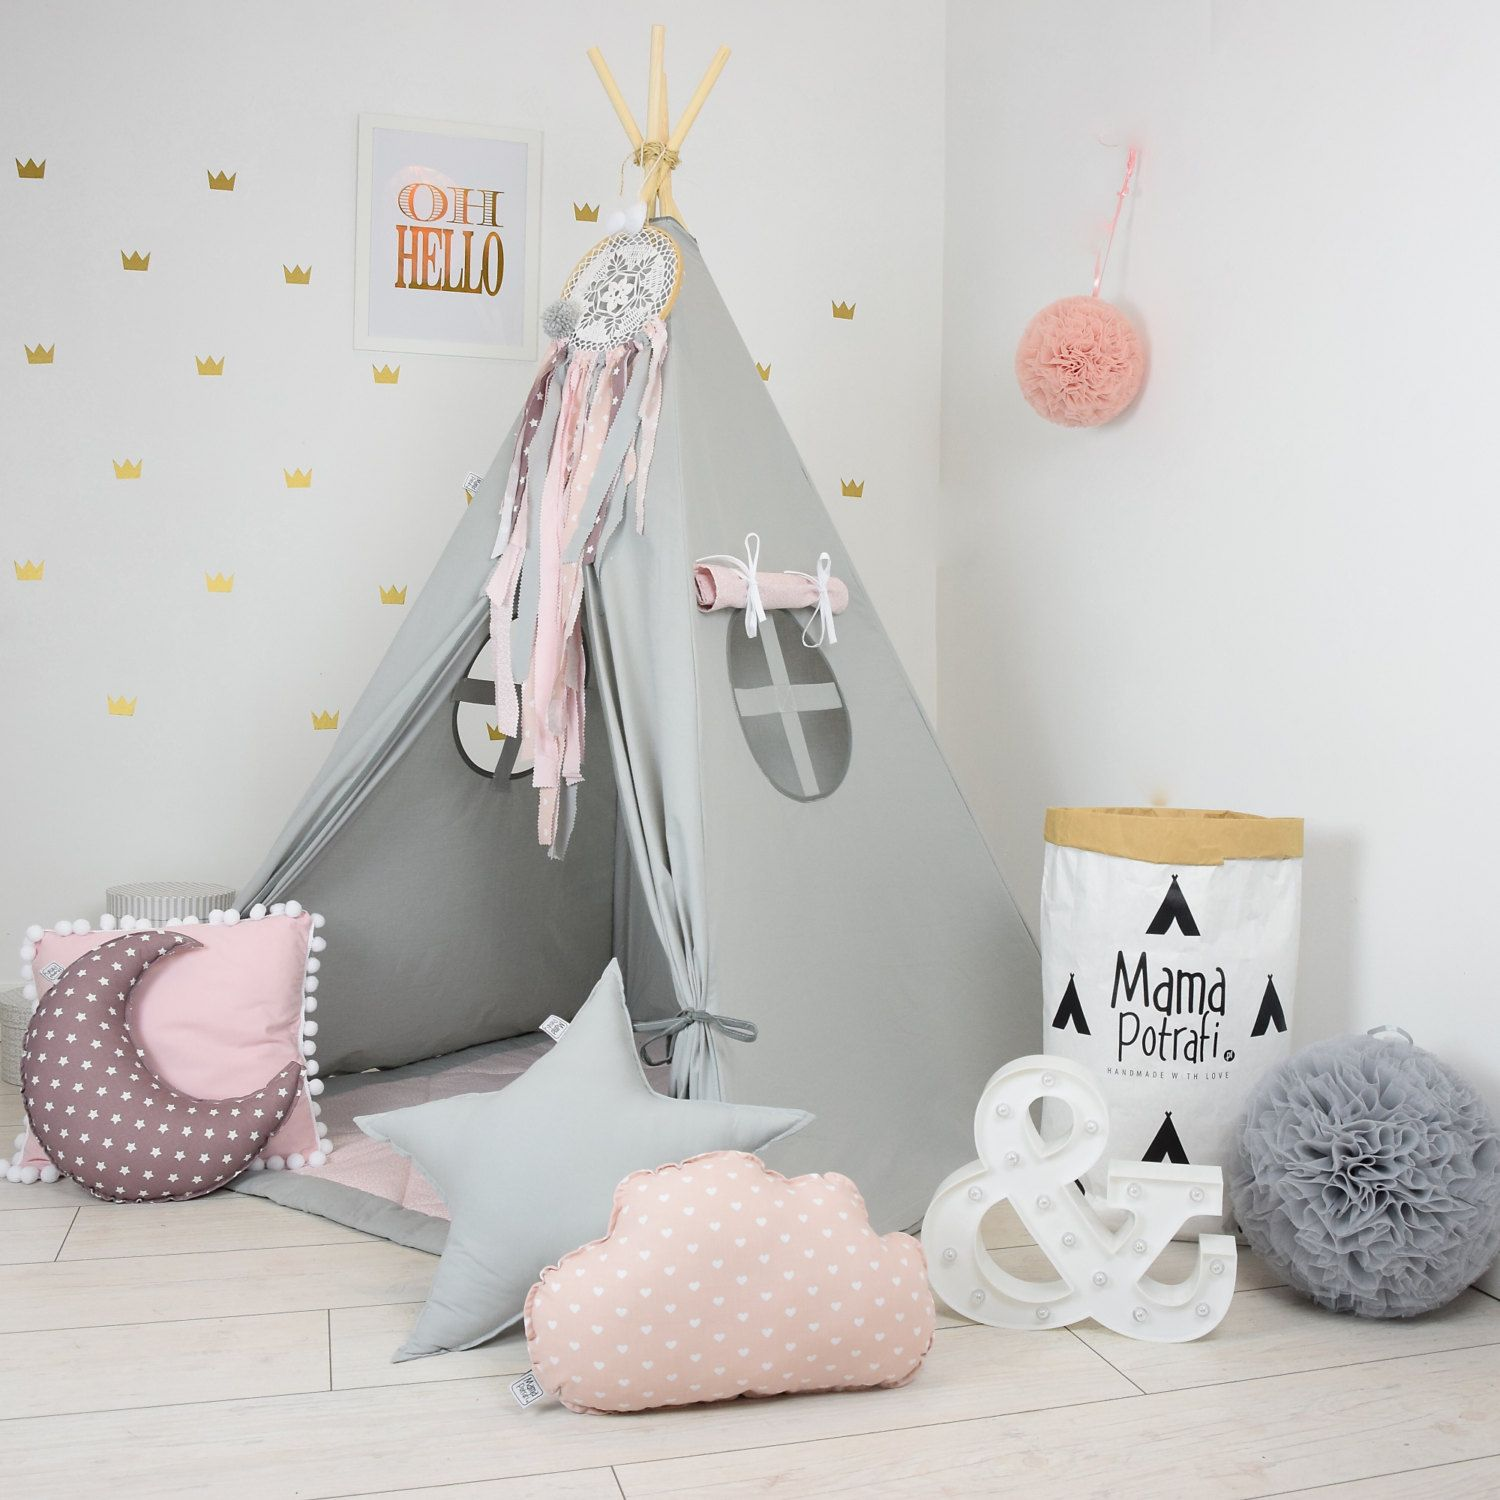 childrens teepee playtent tipi zelt wigwam kids teepee tent play teepee teepee with mat. Black Bedroom Furniture Sets. Home Design Ideas